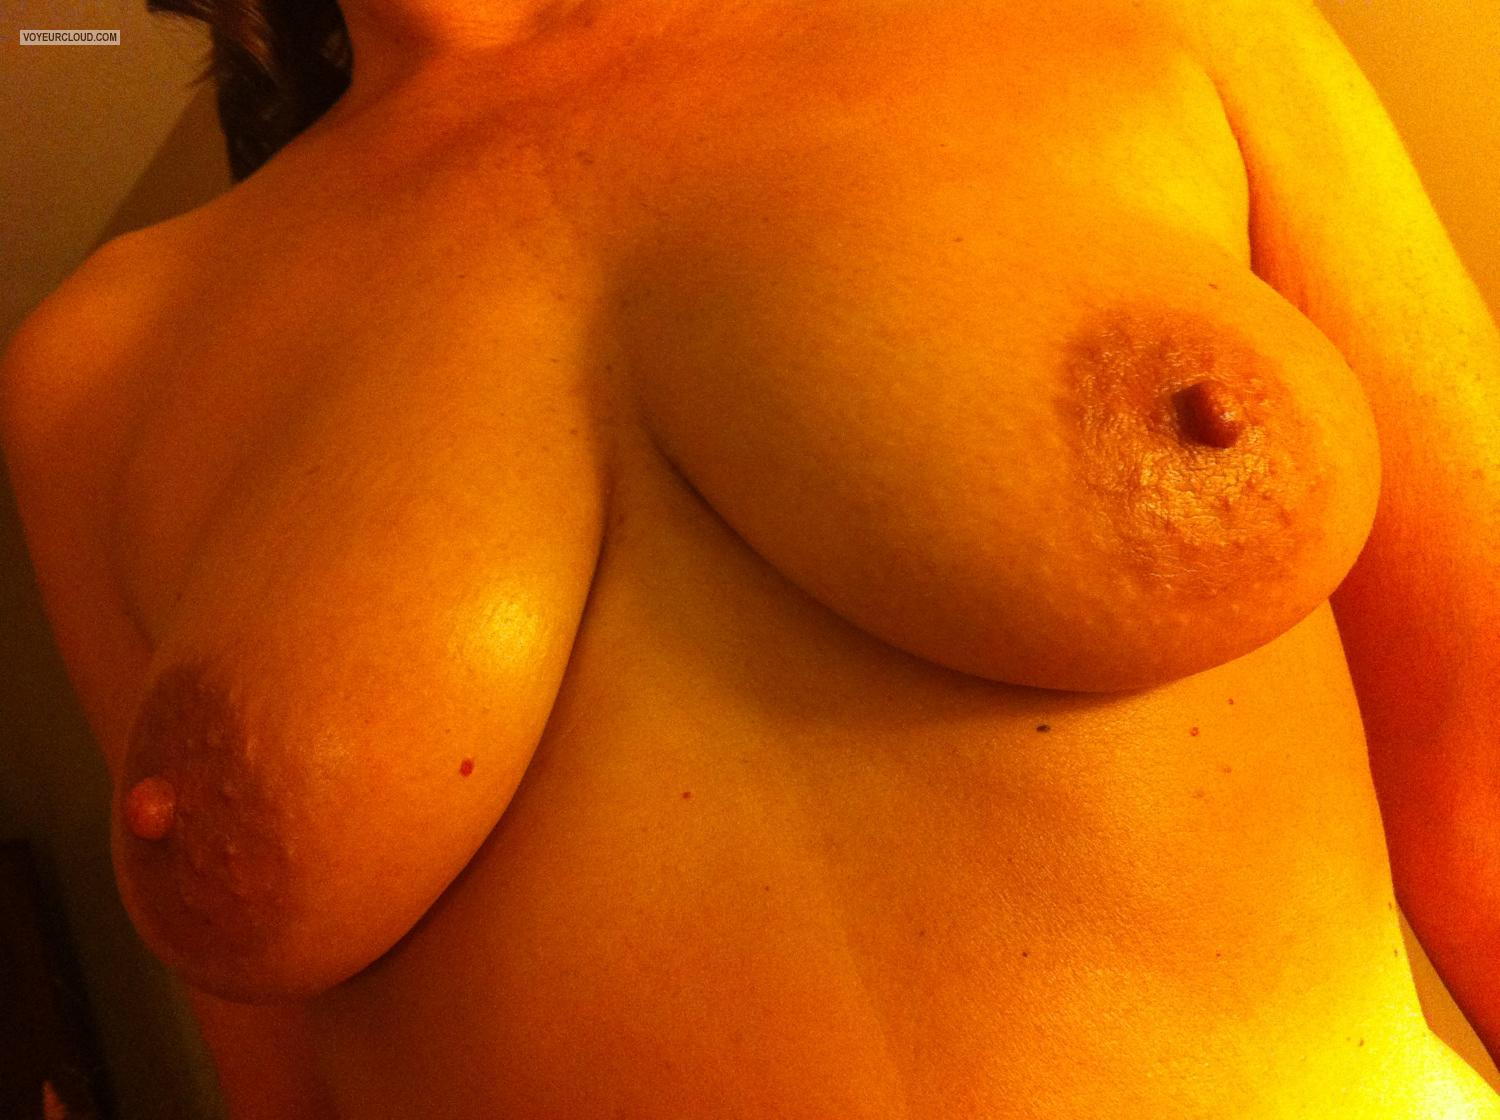 Tit Flash: Medium Tits By IPhone - Pepper Duval from United States